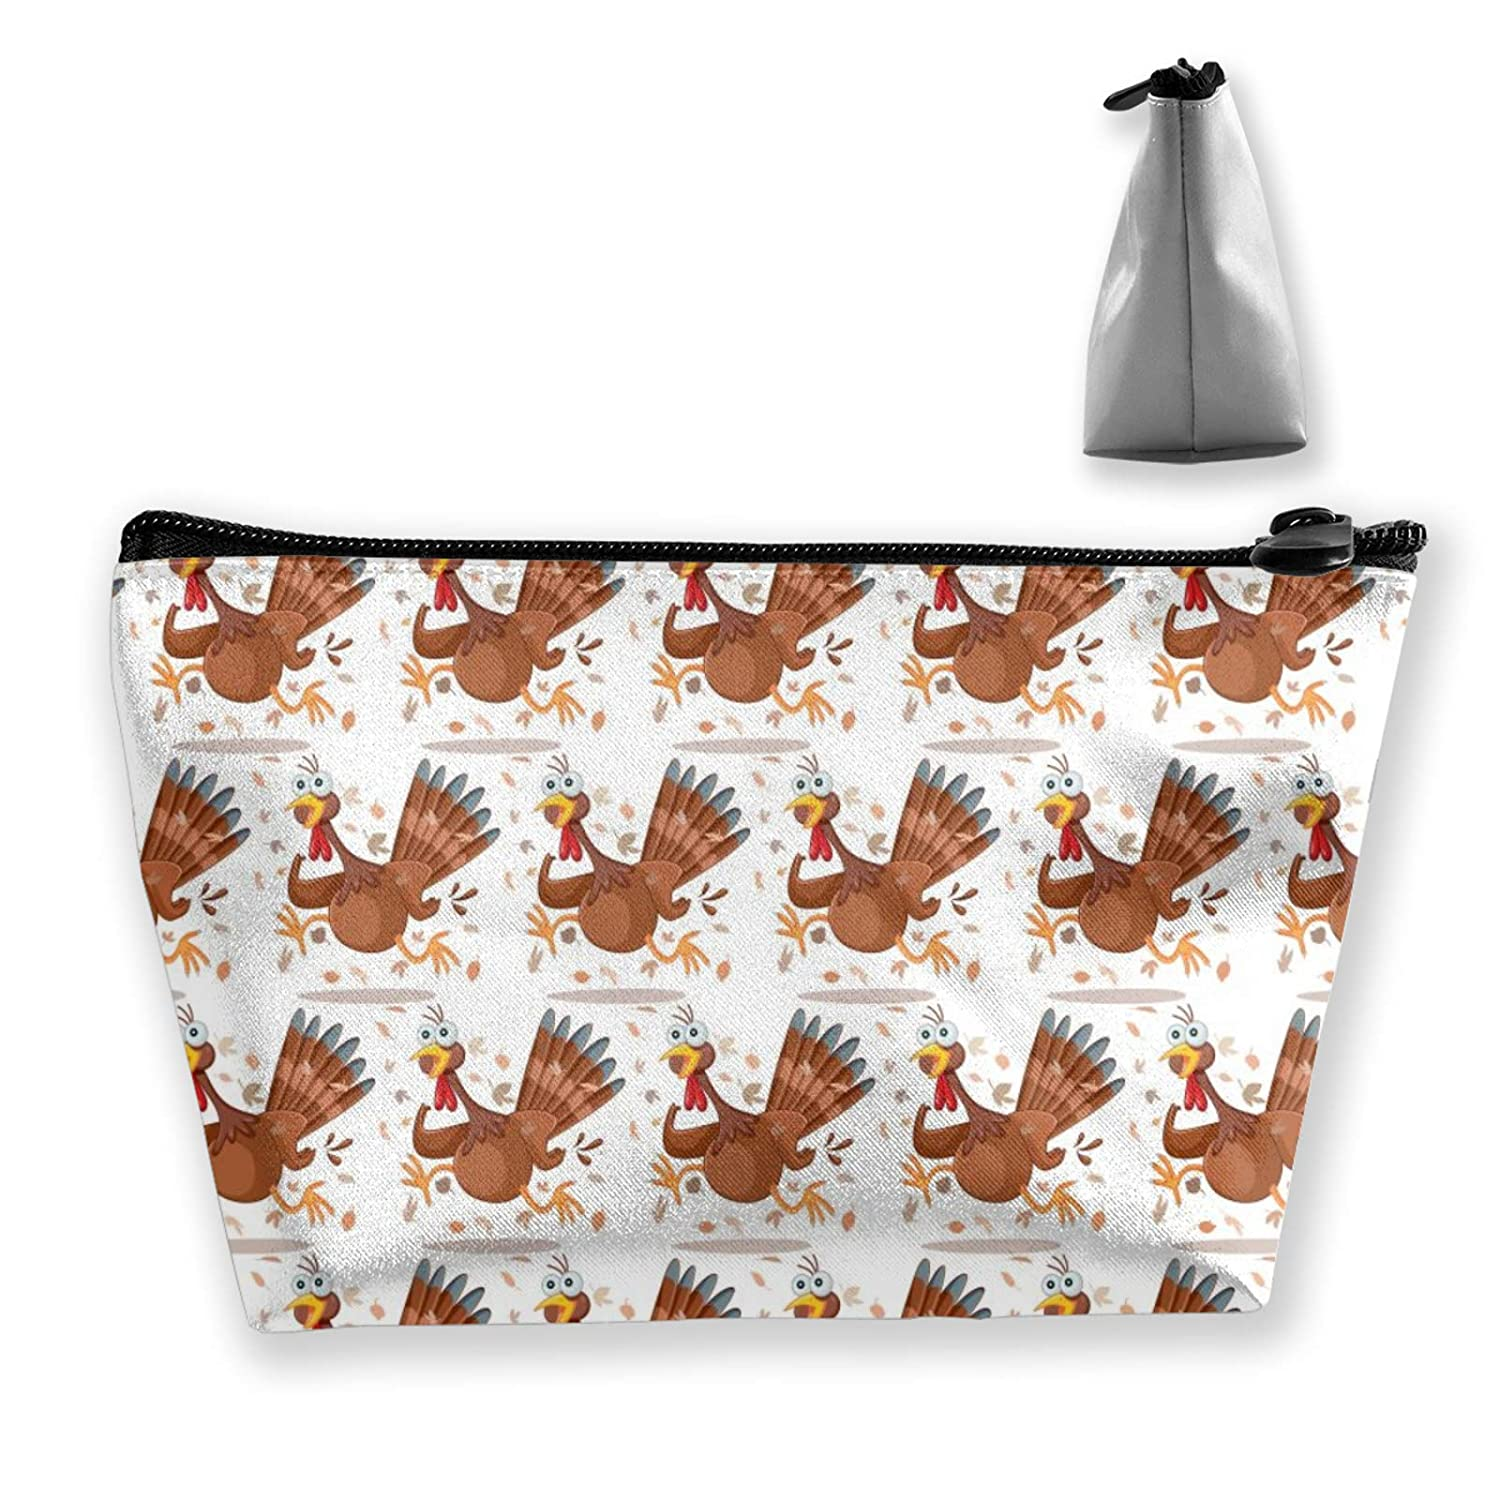 Cute Funny Turkey Pattern (24) Storage Bag Holder Portable Gift For Girls Women Large Capacity Cosmetic Train Case For Makeup Brushes Jewelry Casual Tote Bag